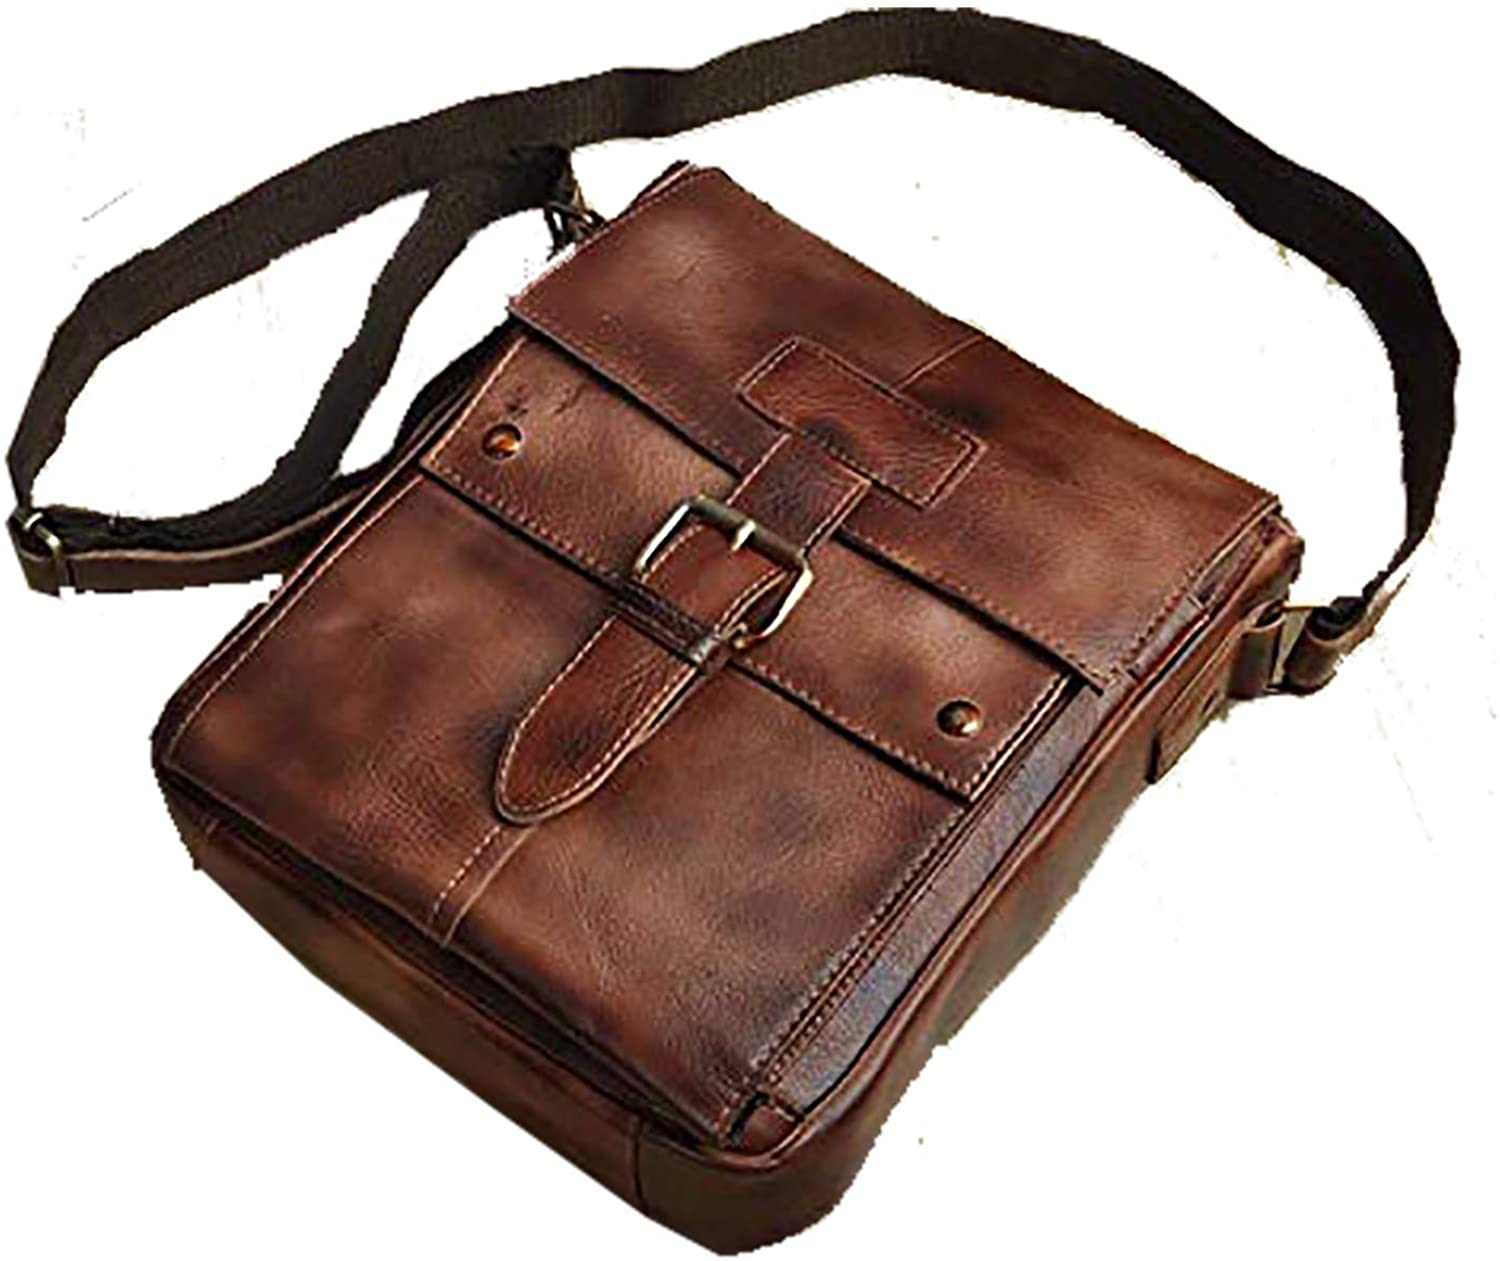 Le aokuu Mens Casual Satchel Laptop Shoulder Sling Bag Travel School Designer Strap Cross-body Messenger Bag Leather